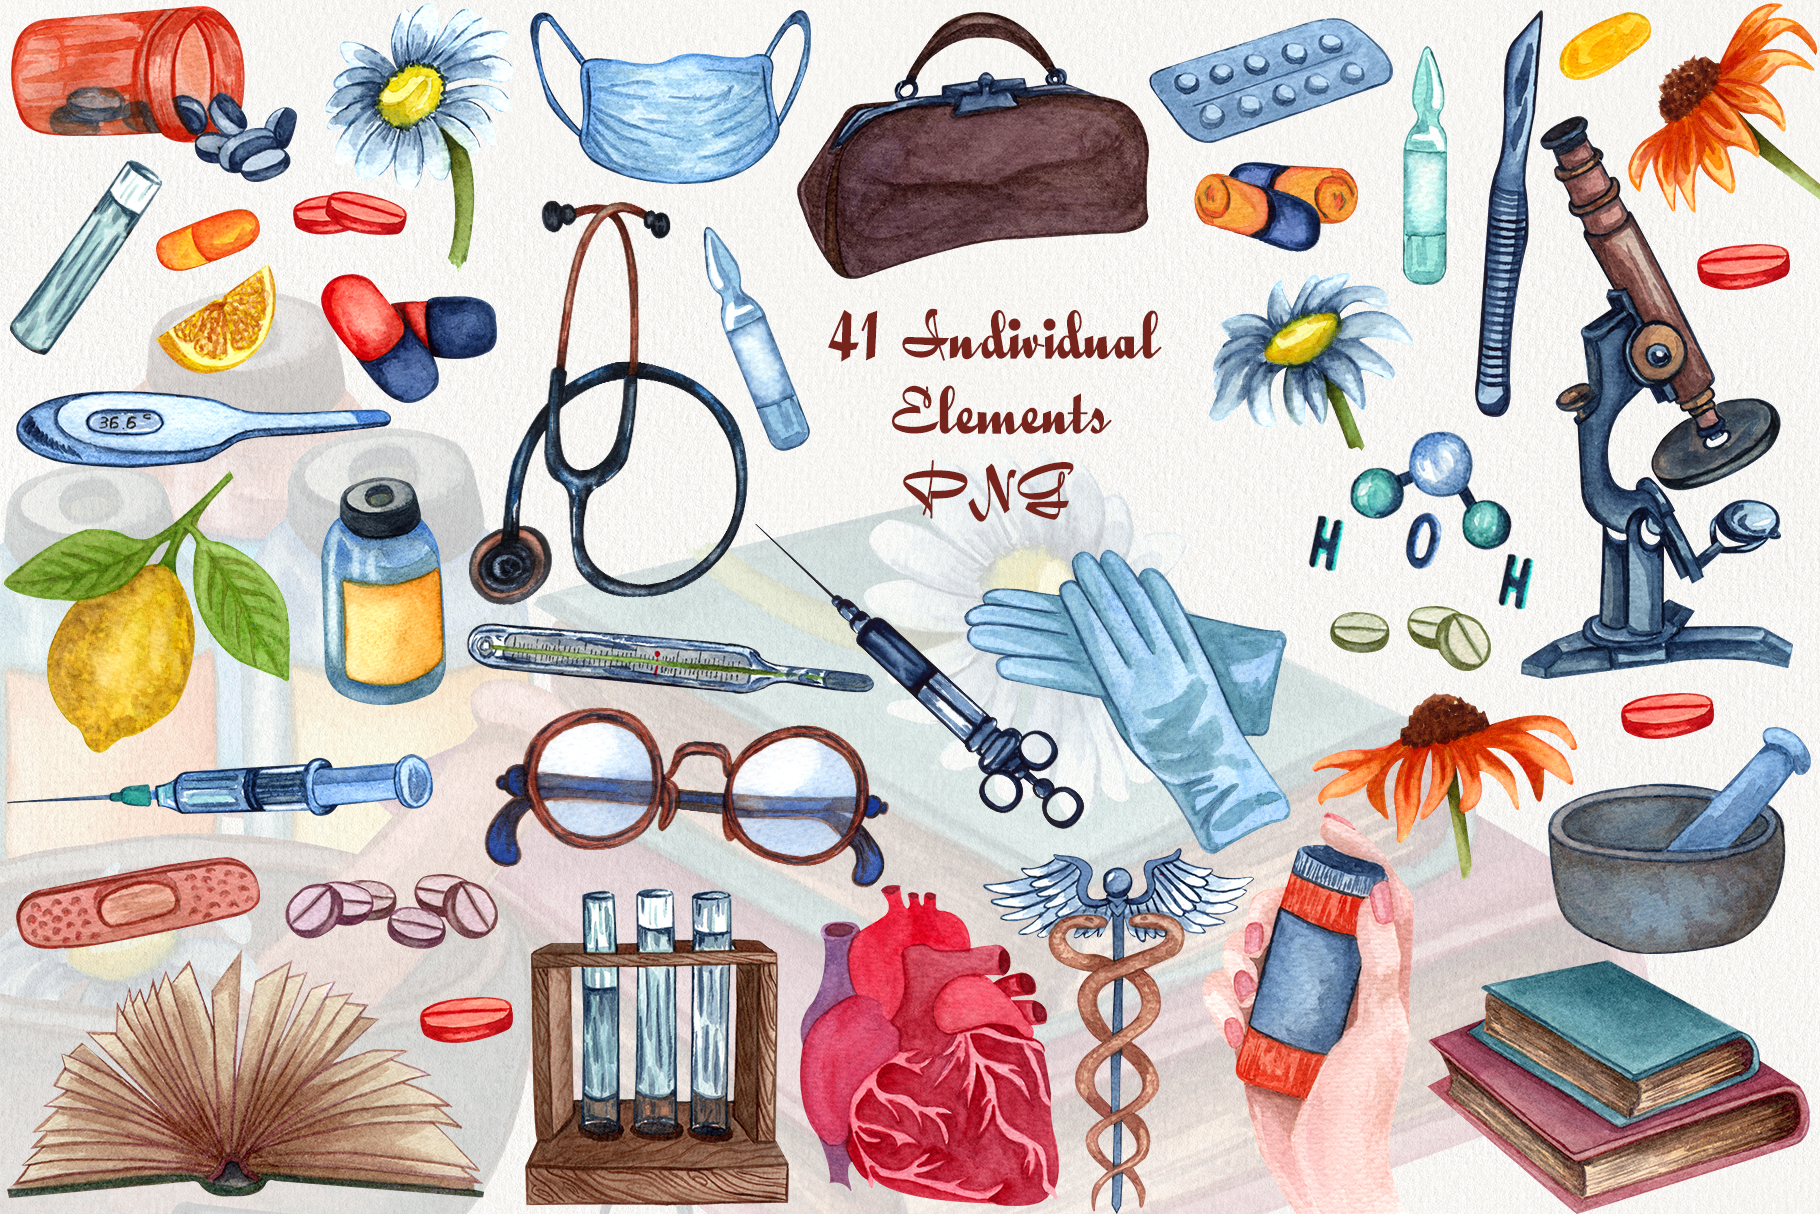 Pharmacy and Medical set example image 2